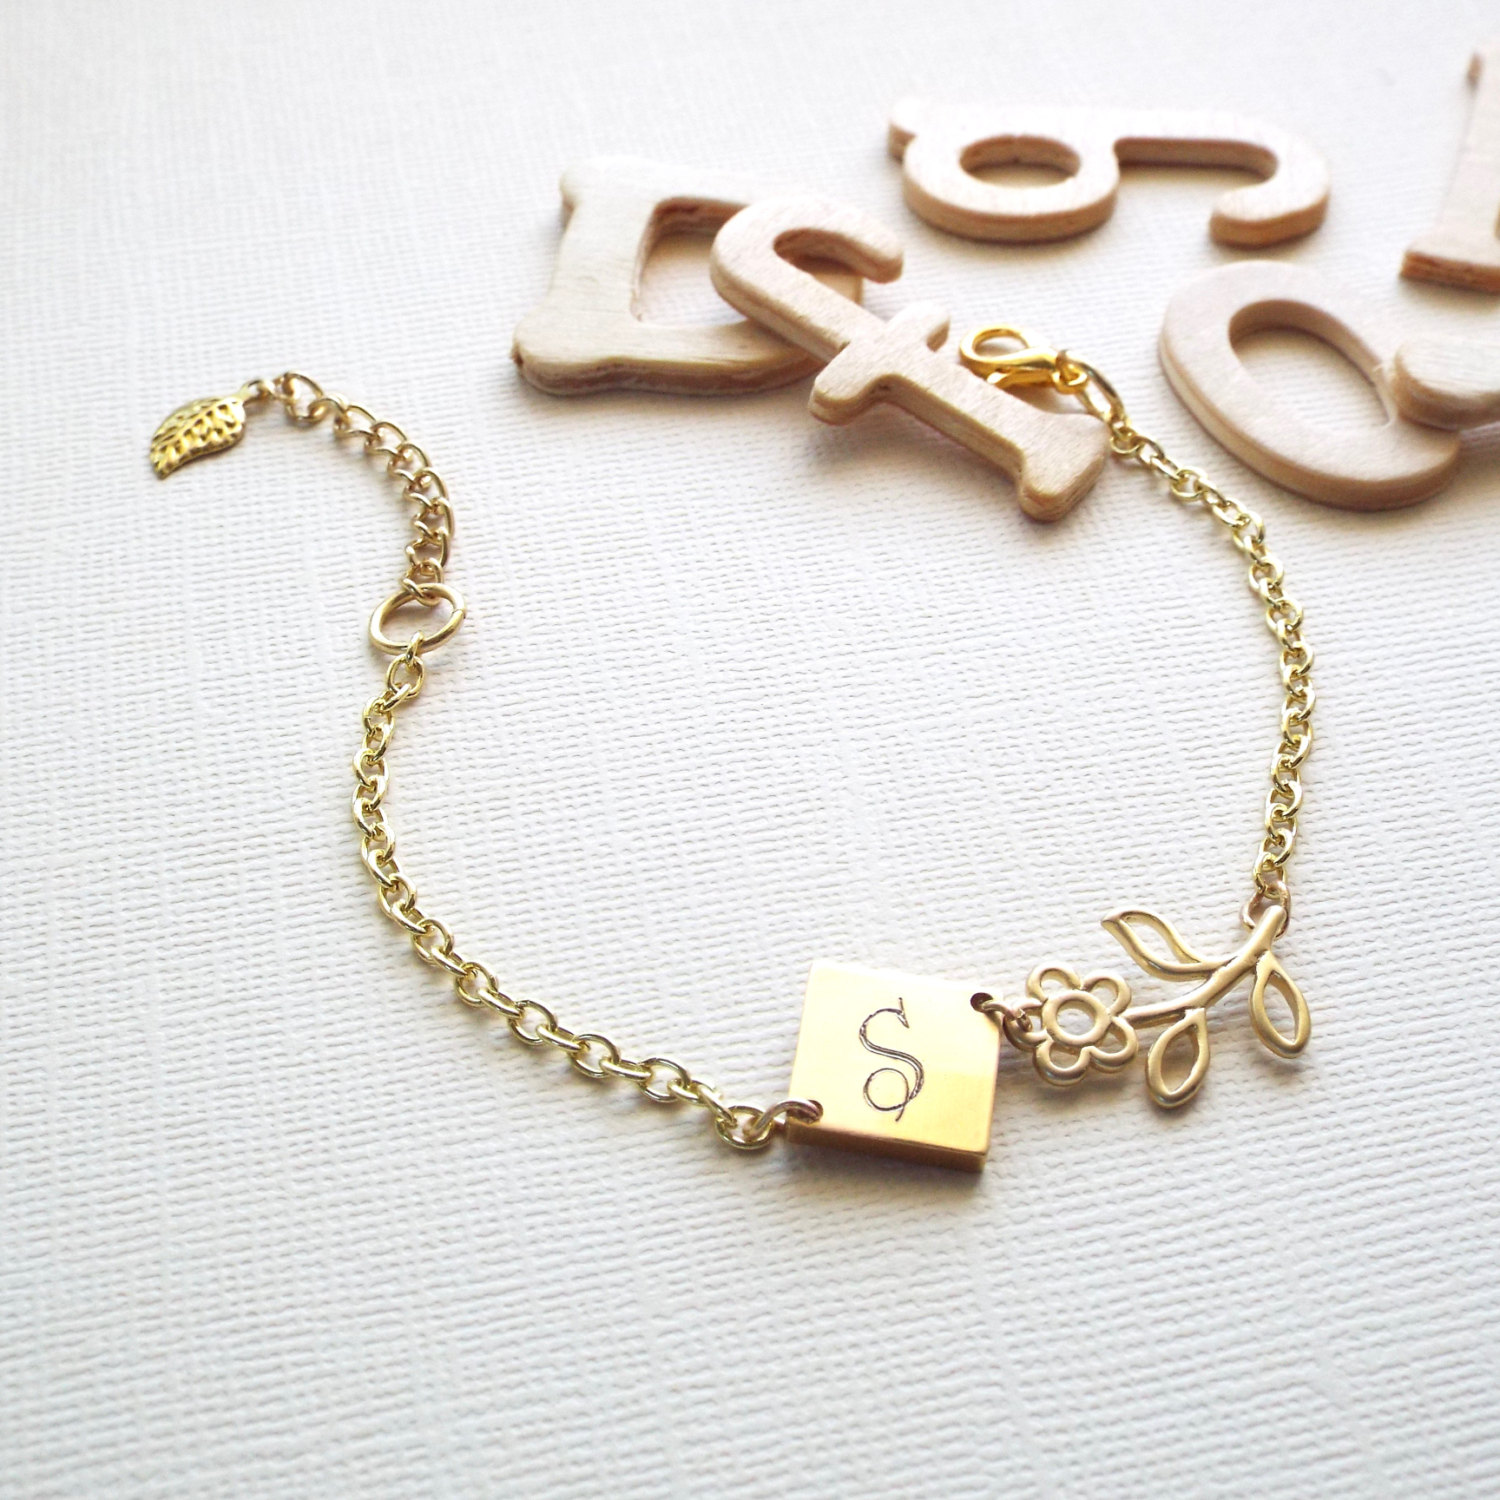 Engraved Charms For Bracelets: Mothers Day Gift, Personalized Bracelet, Gold Initial